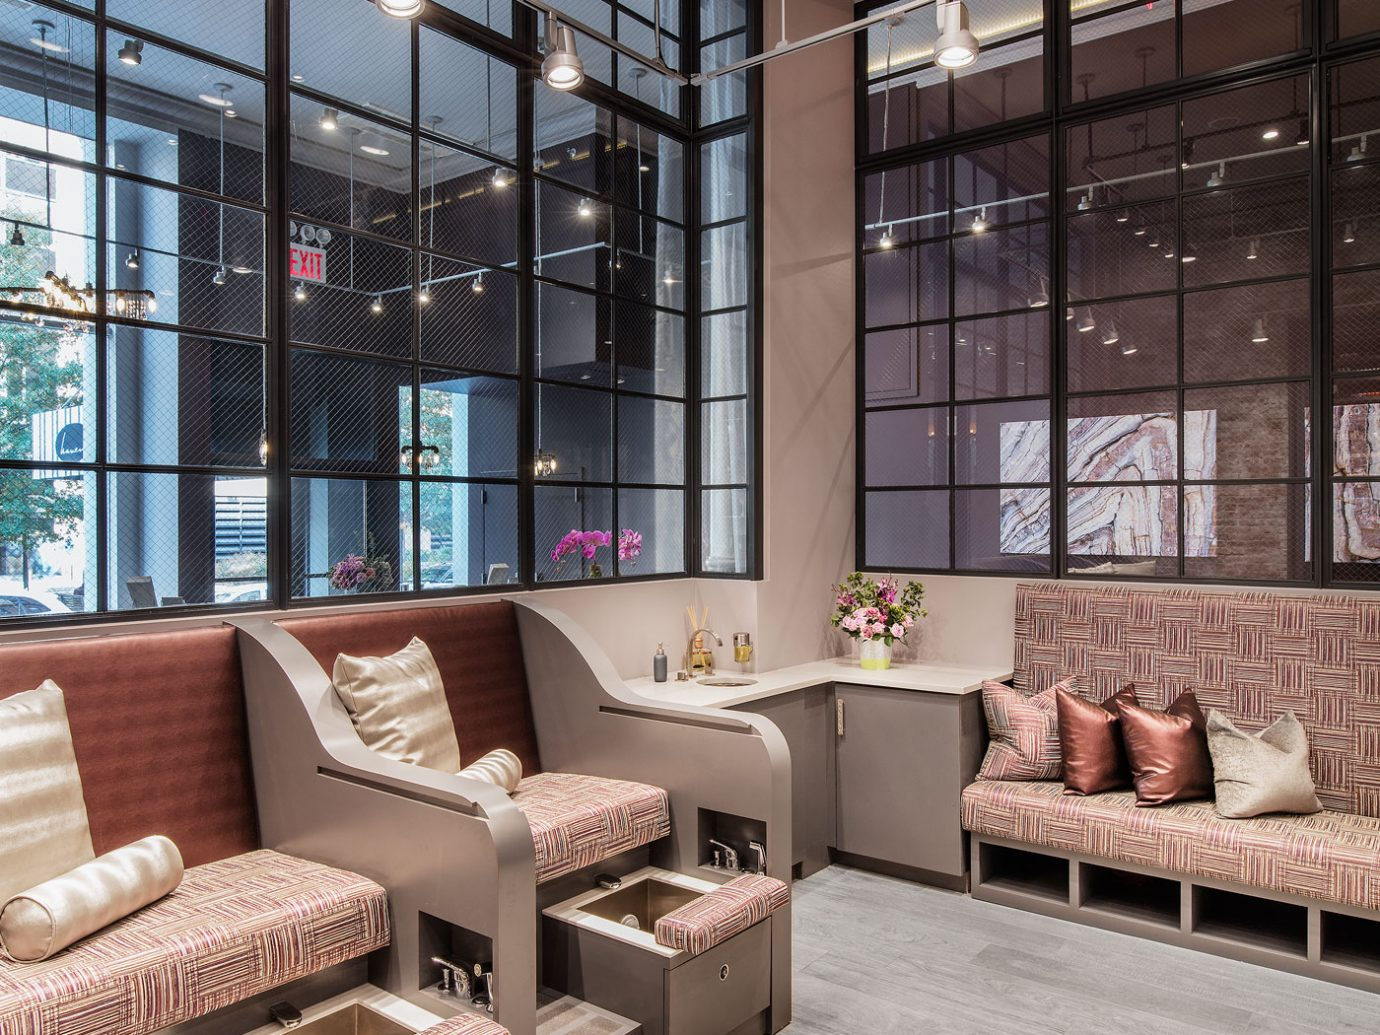 The Best Day Spas in NYC: Great Jones Spa, Shibui, and More